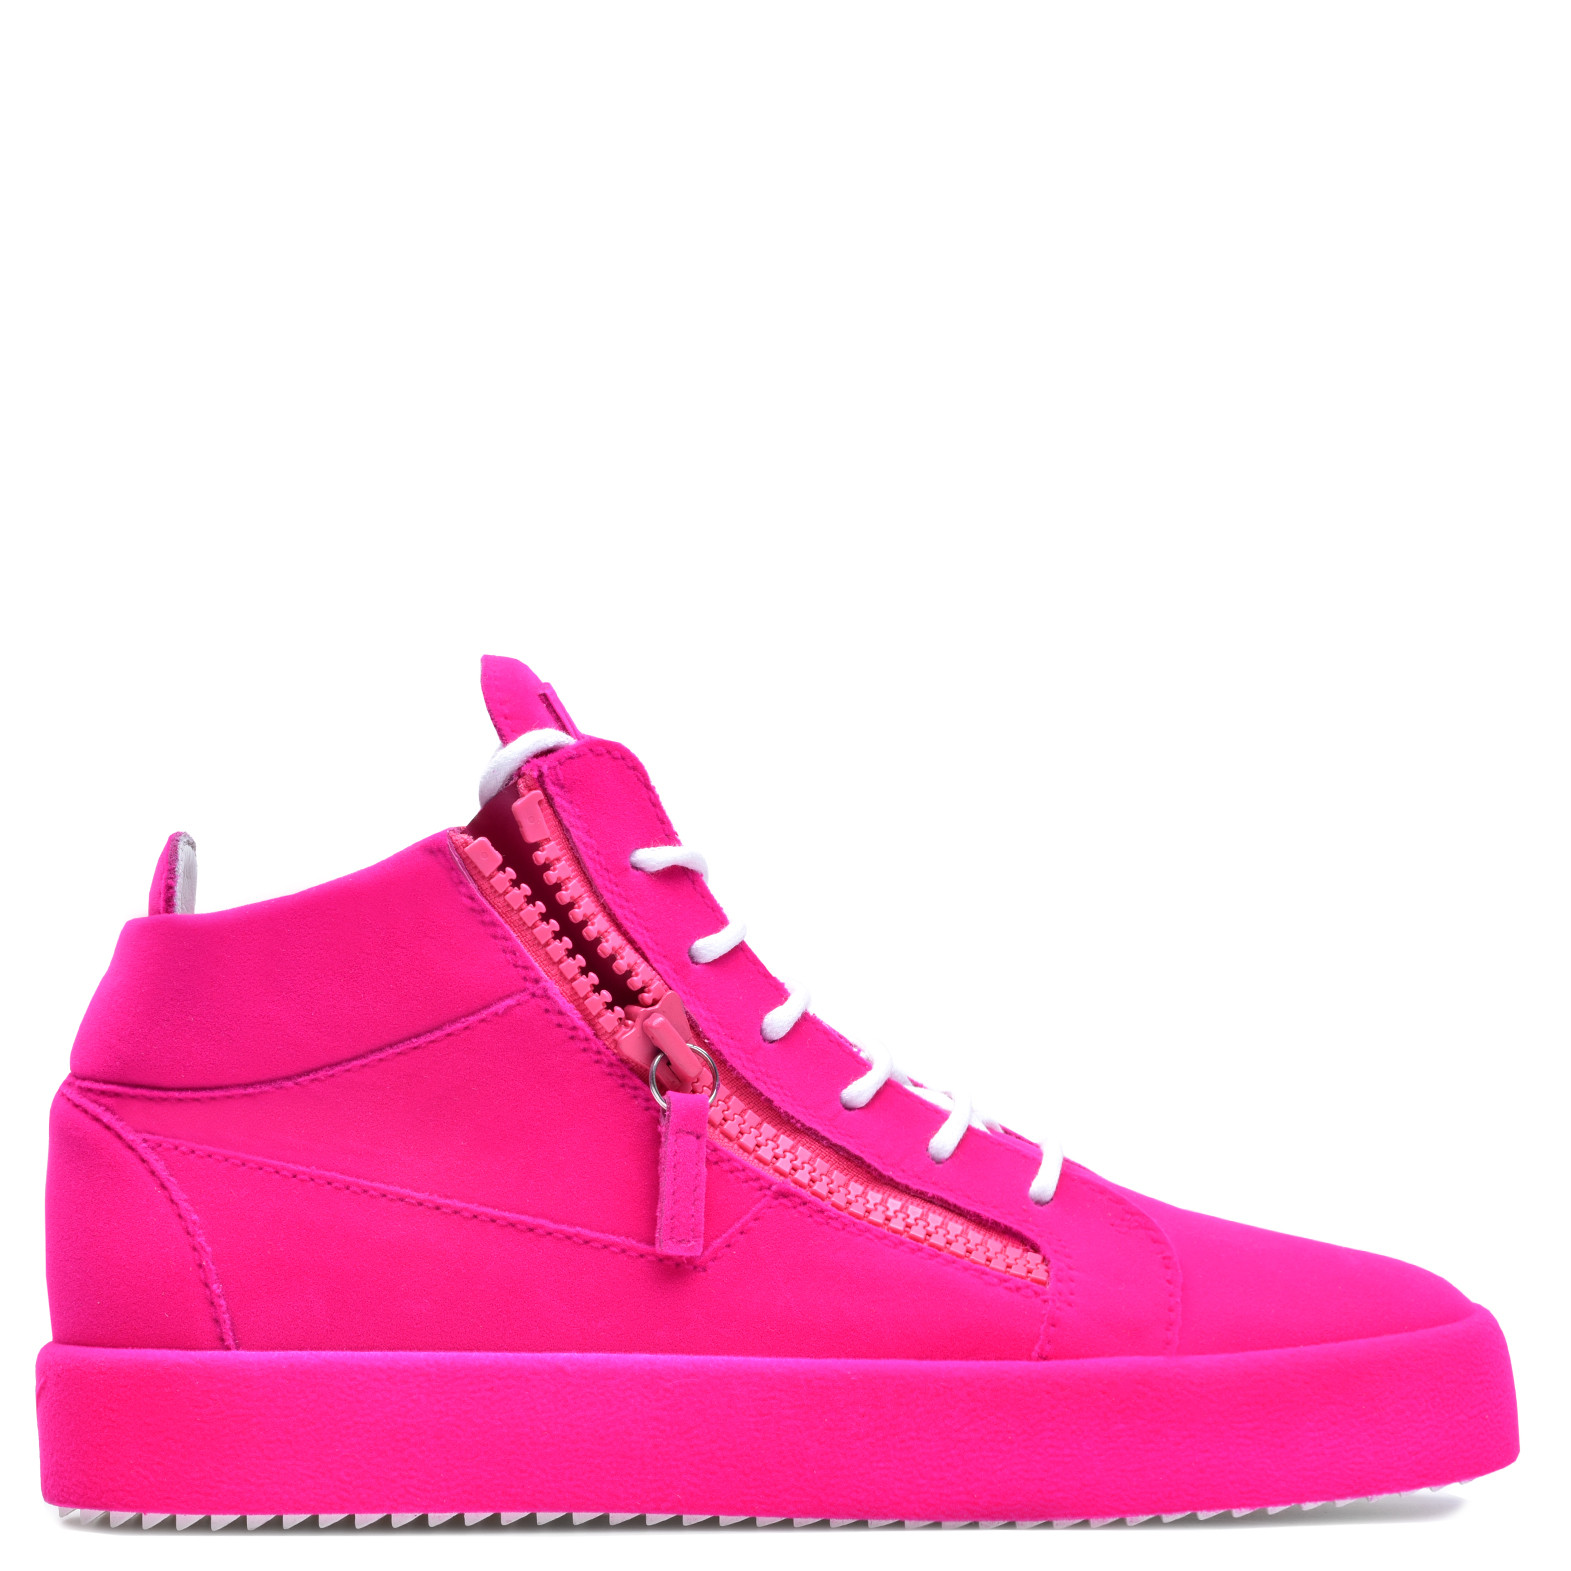 Giuseppe Zanotti Violet leather low-top sneaker with flocking patina THE UNFINISHED ZifSP0y